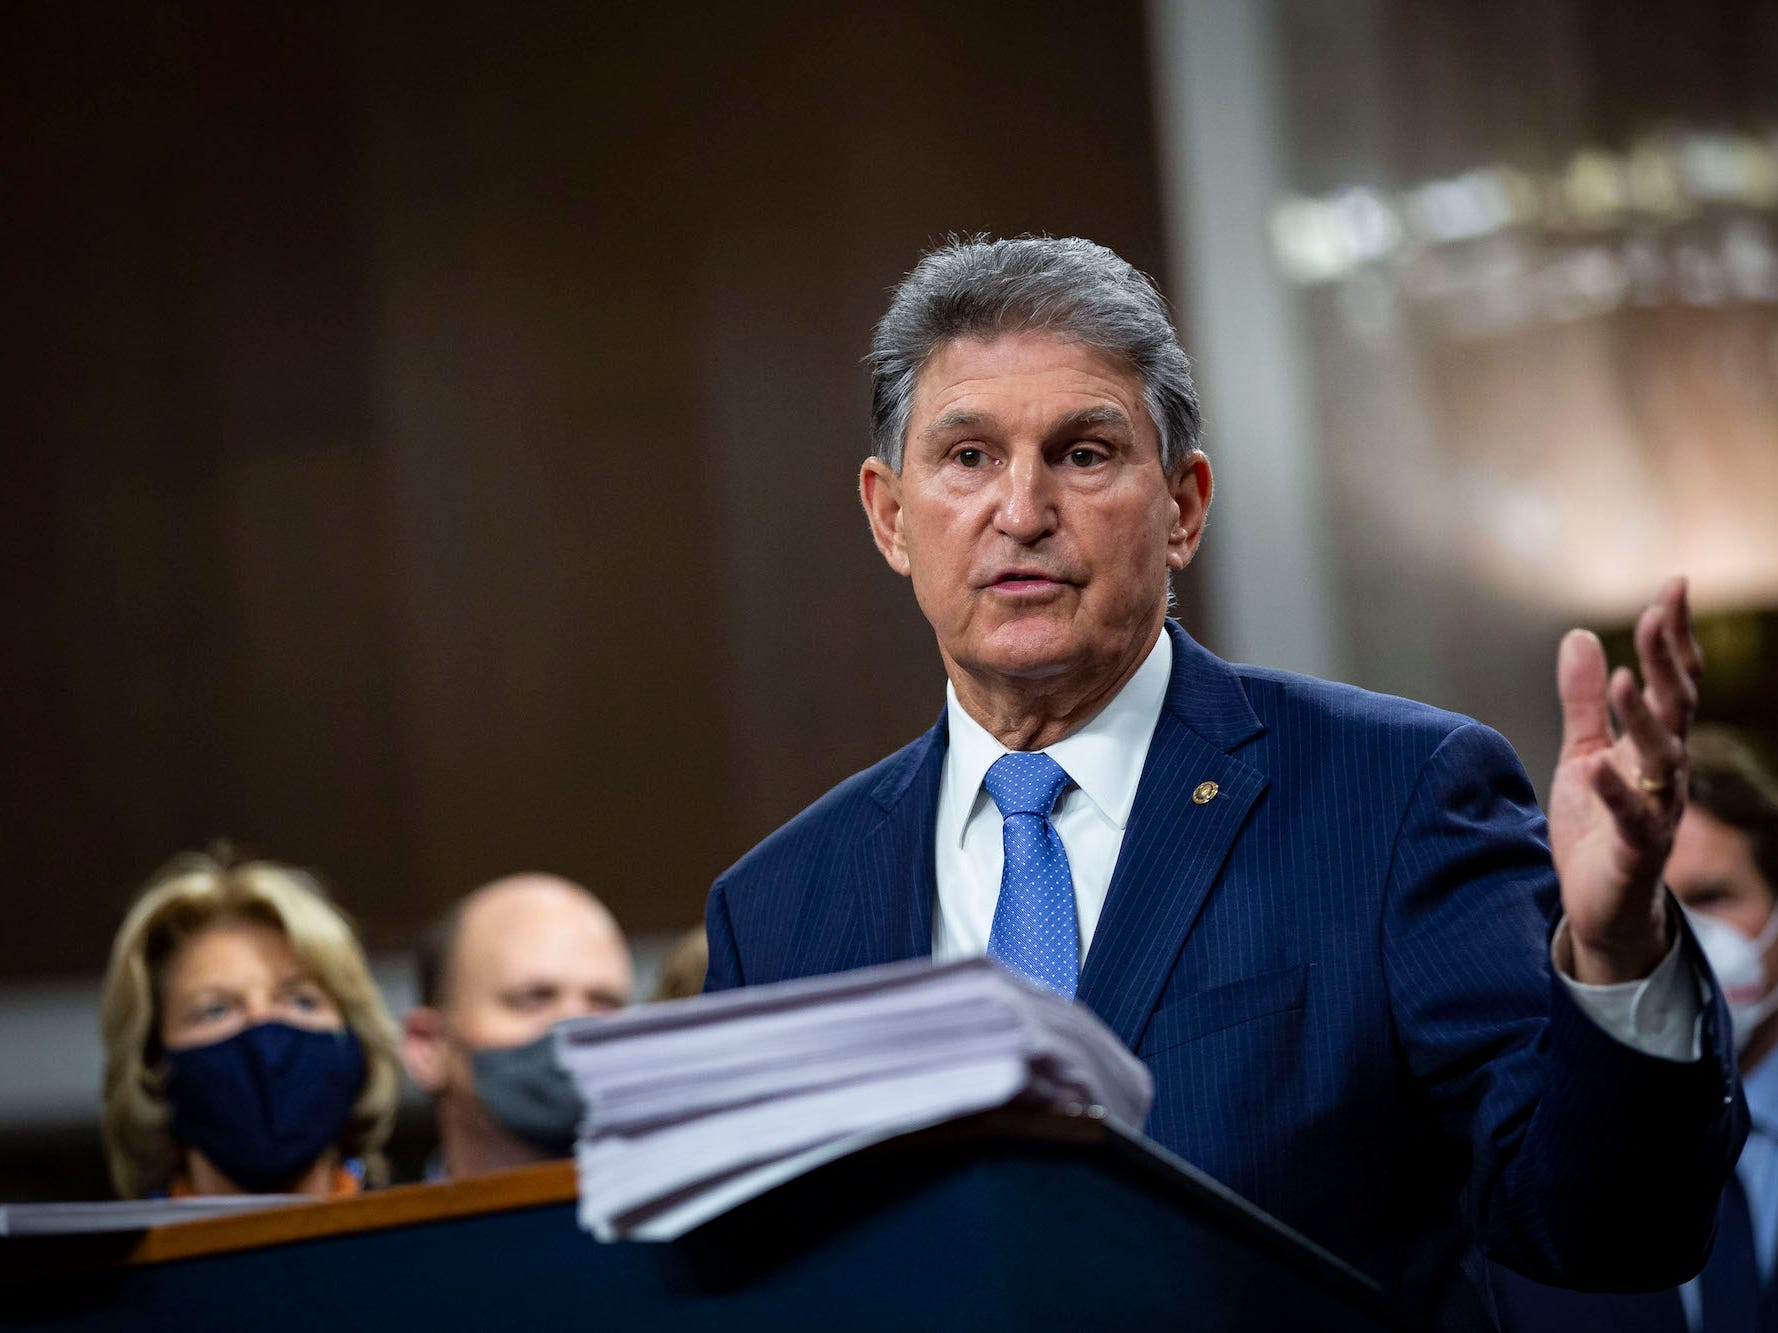 Joe Manchin poses a risk to raising the minimum wage, even supposing 250,000 West Virginians would relieve from the raise